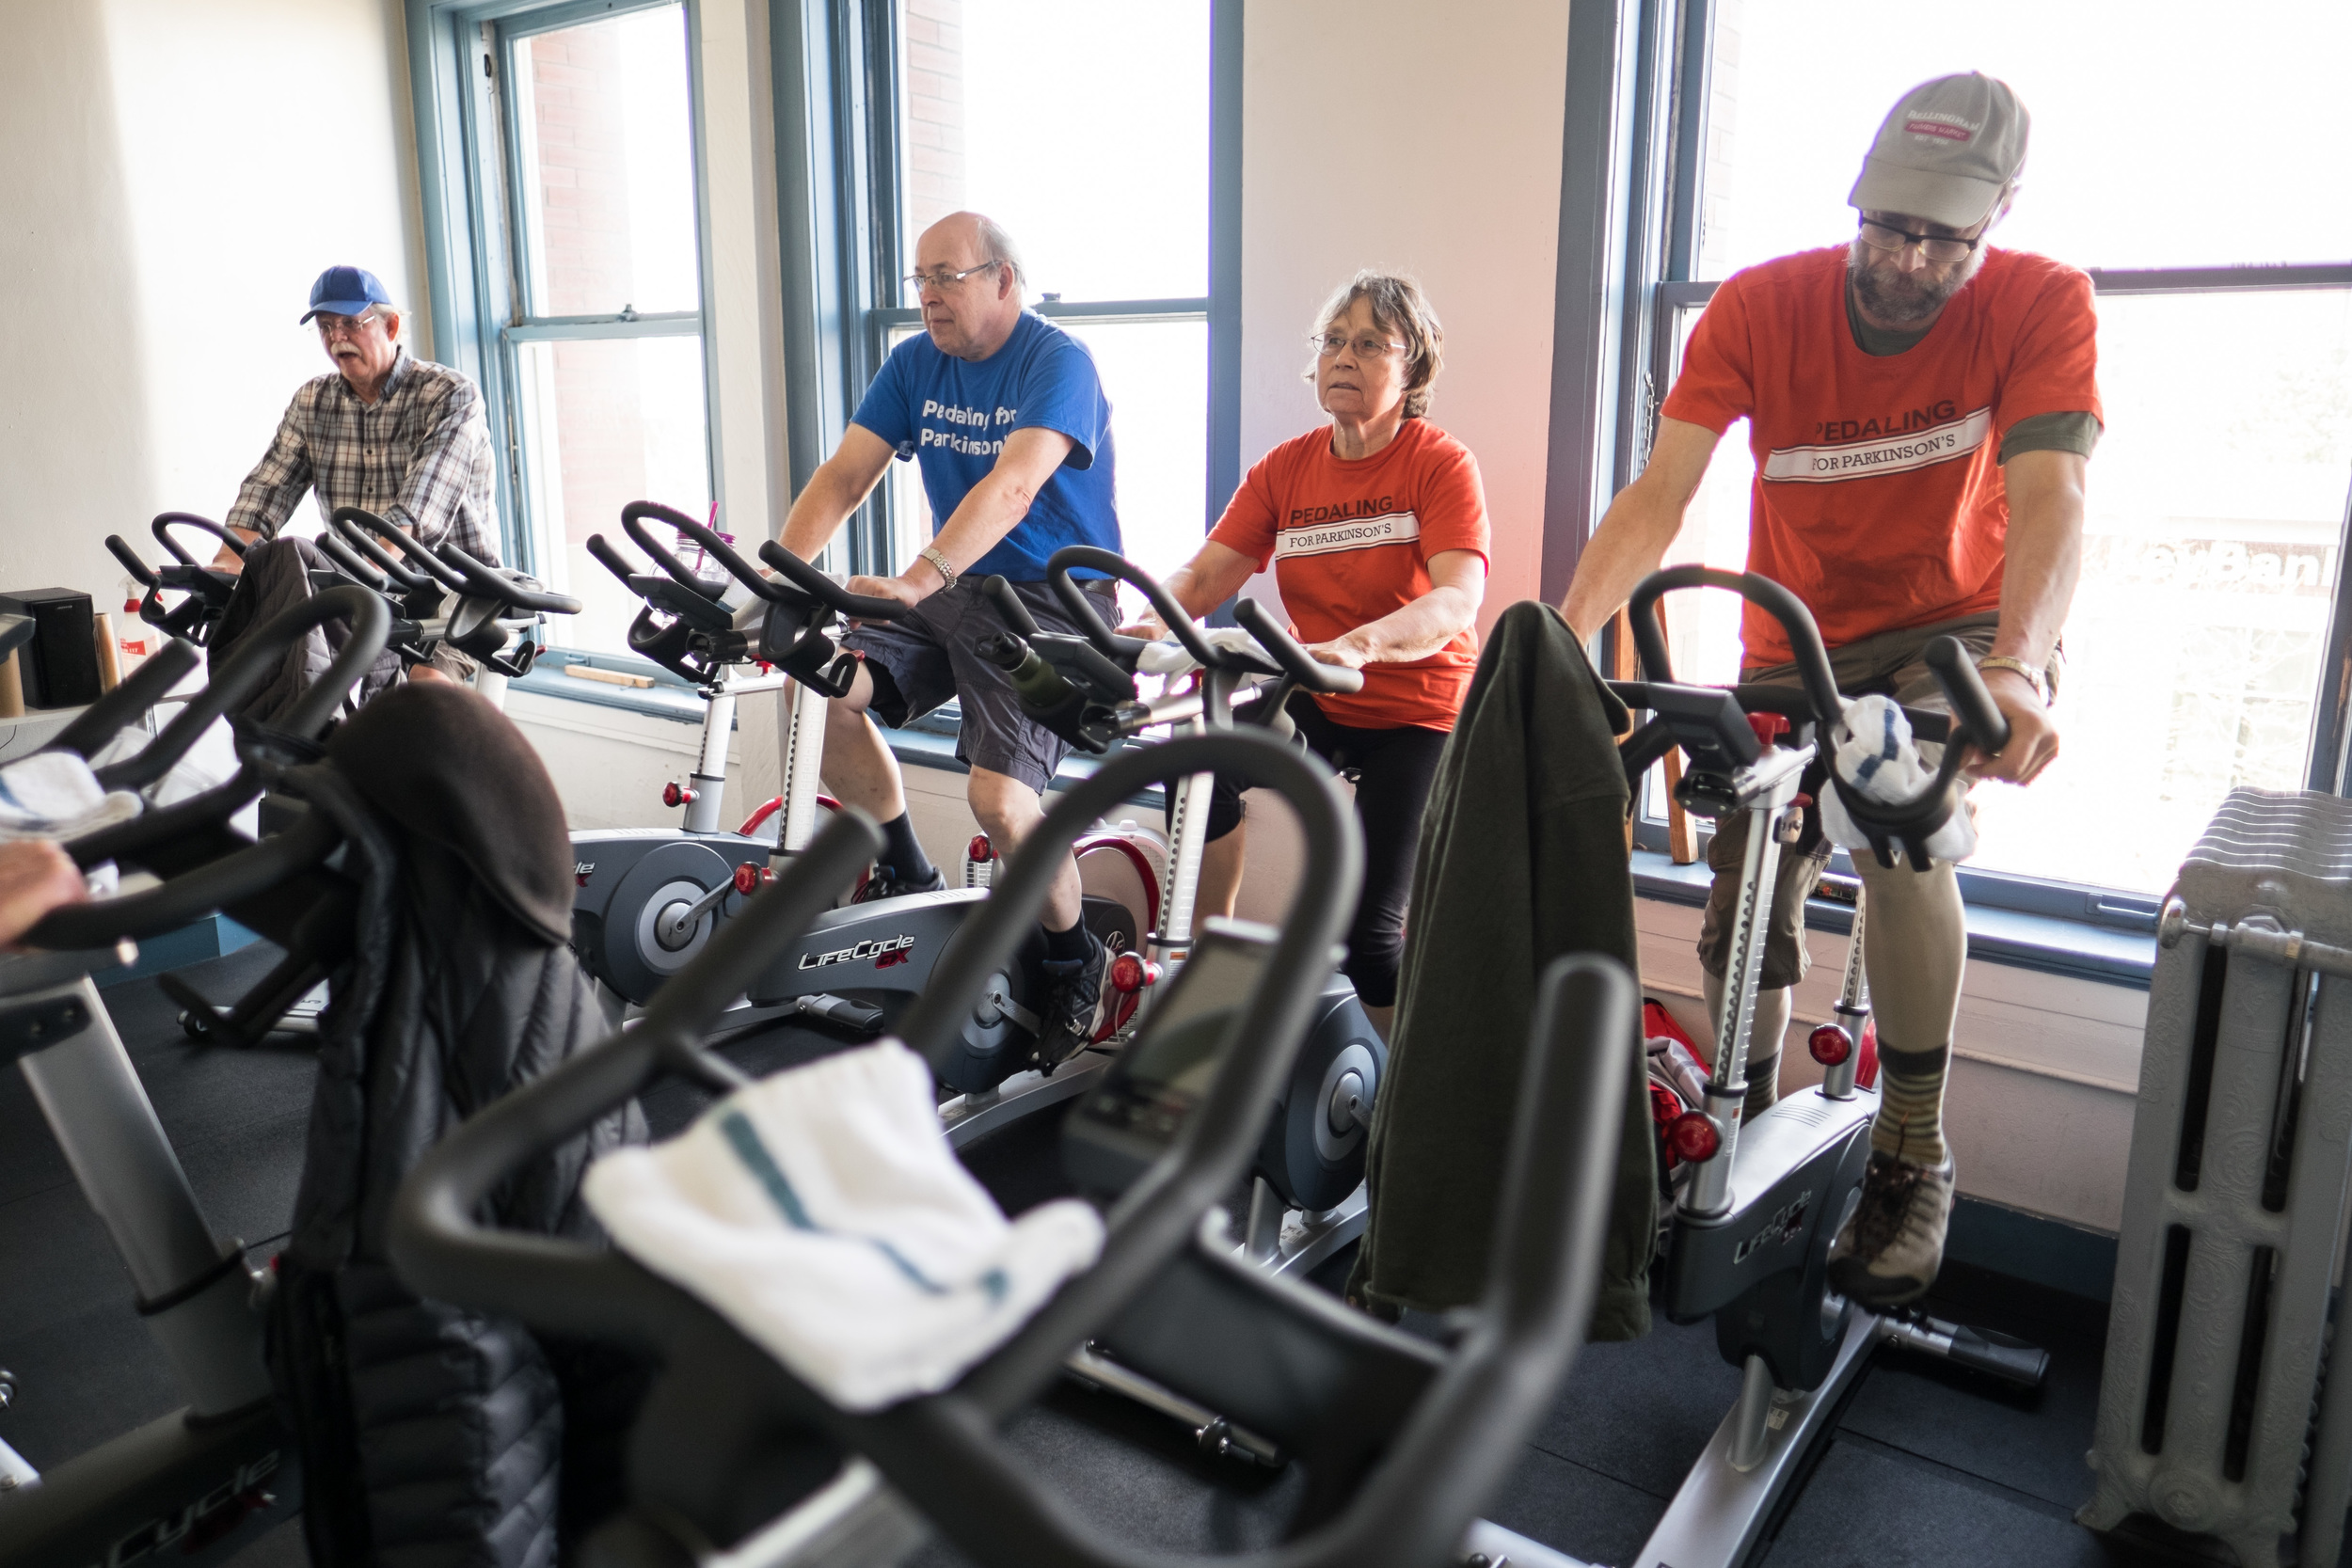 RICK HERMANN (RIGHT) PEDALS AWAY DURING HIS YMCA SPIN CLASS THAT HELPS HIM COMBAT THE SYMPTOMS OF PARKINSON'S DISEASE. CLASS MEMBERS SPEND THE HOUR TALKING OR LISTENING TO MUSIC. For Klipsun Magazine